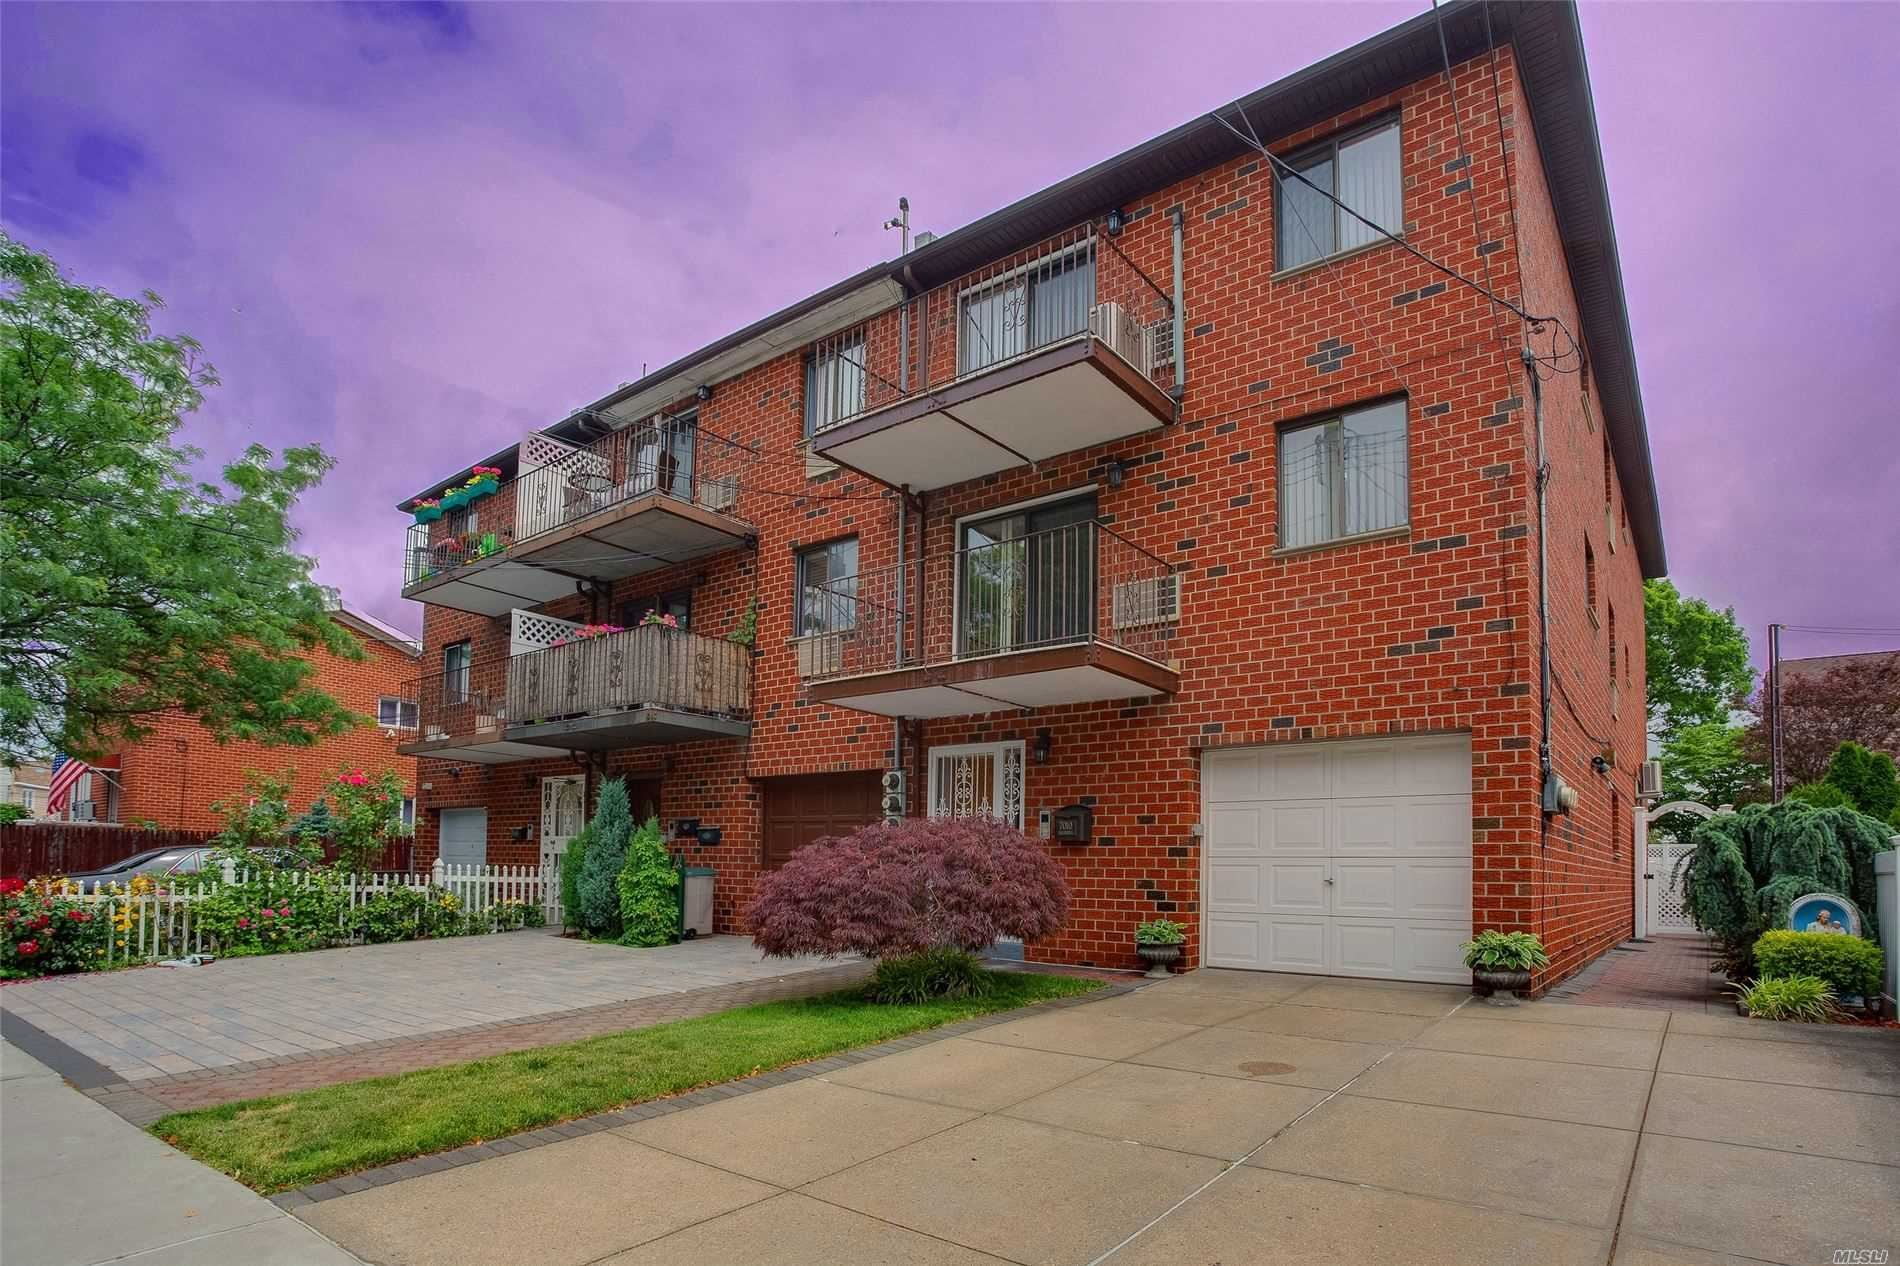 70-10 Caldwell Avenue, Maspeth, NY 11378 - MLS#: 3224242